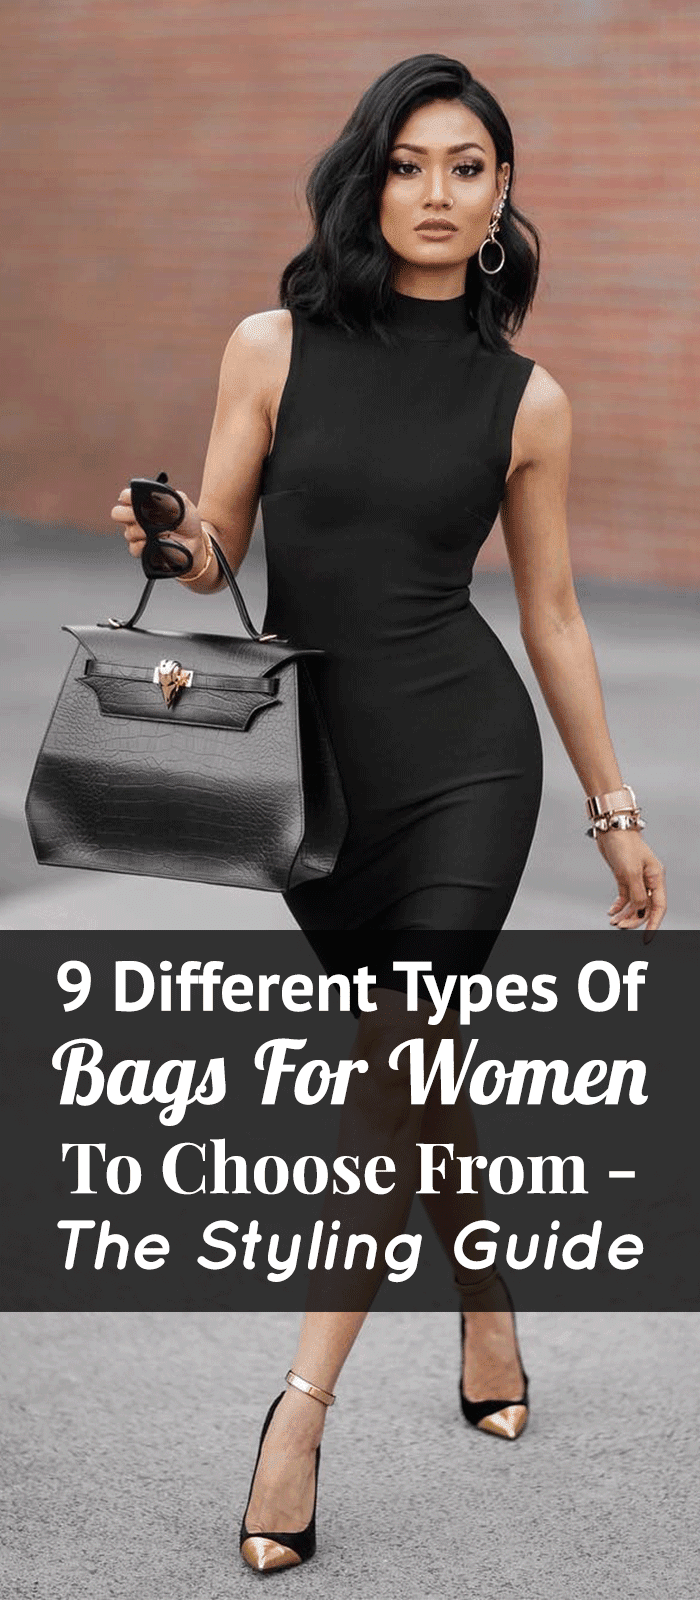 9 Different Types Of Bags For Women To Choose From- The Styling Guide